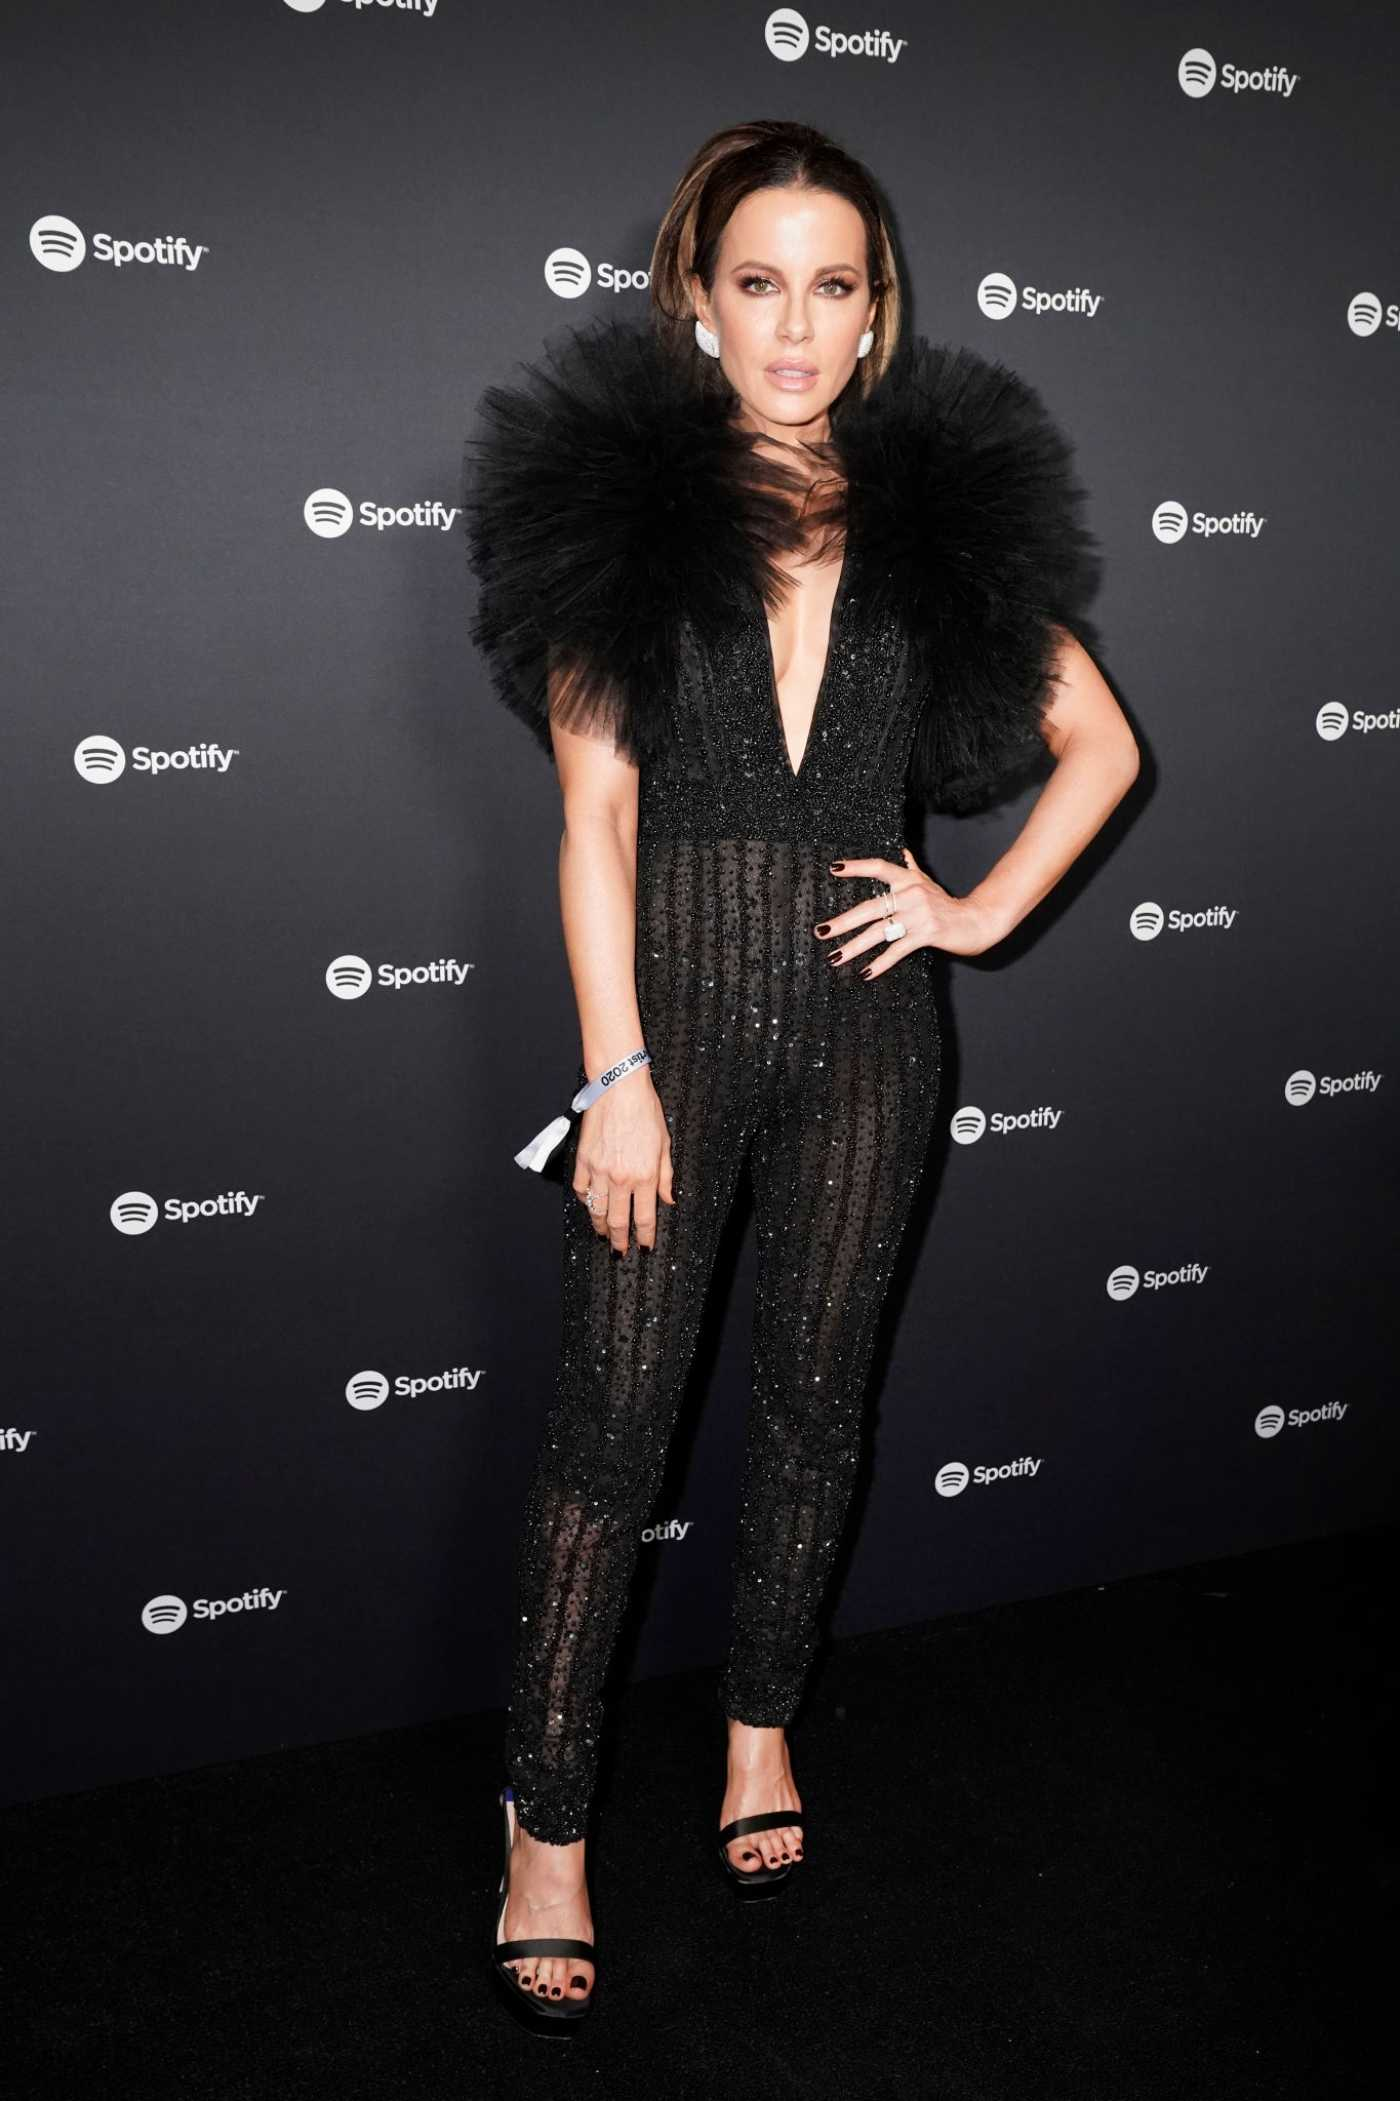 Kate Beckinsale Attends 2020 Spotify Best New Artist Party in Los Angeles 01/23/2020